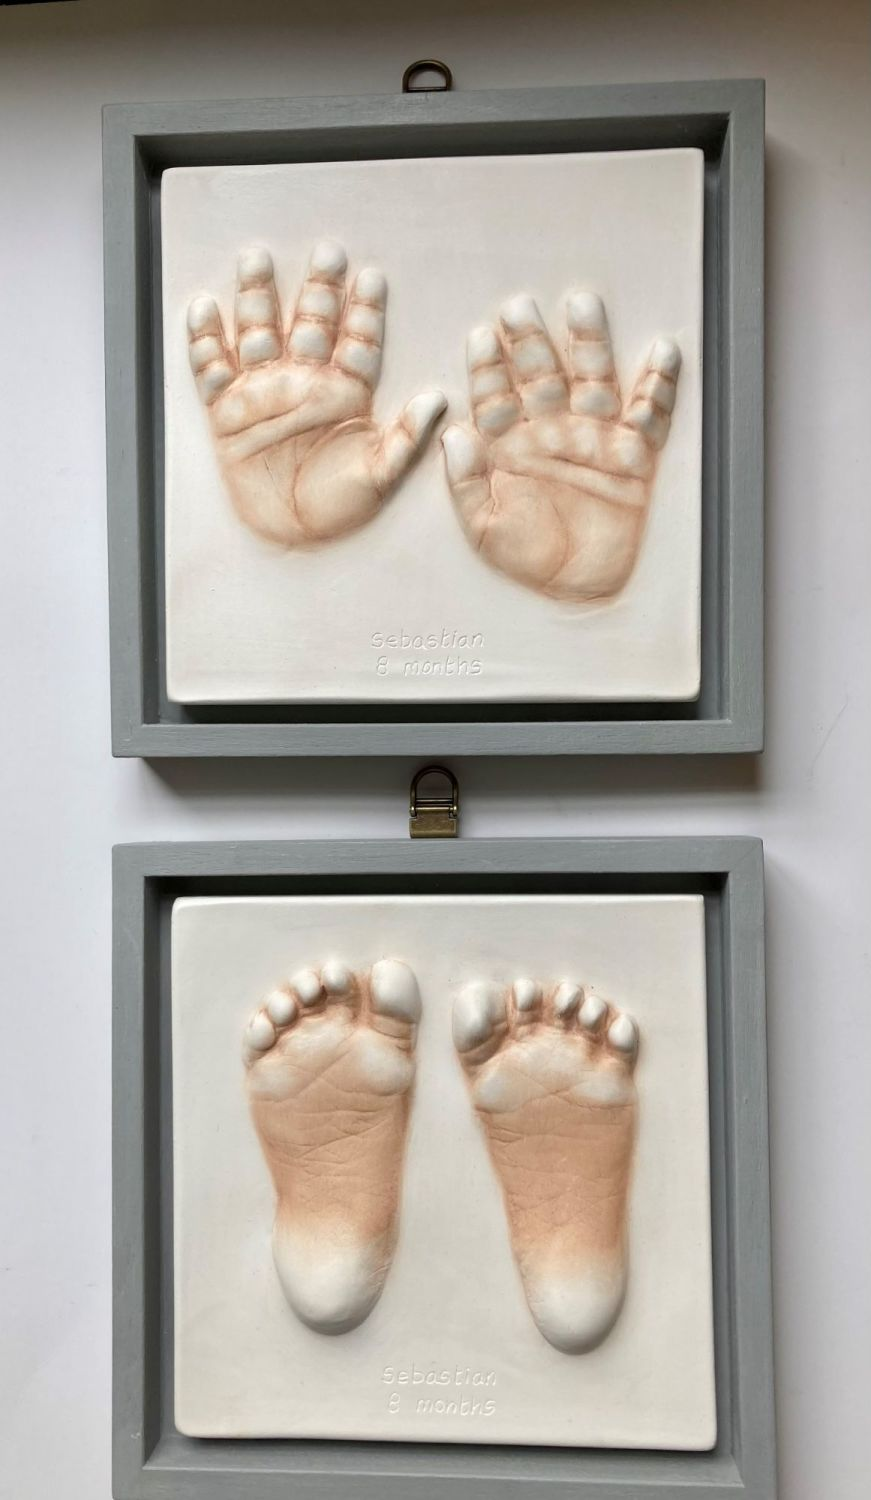 2 small baby impressions in open frame